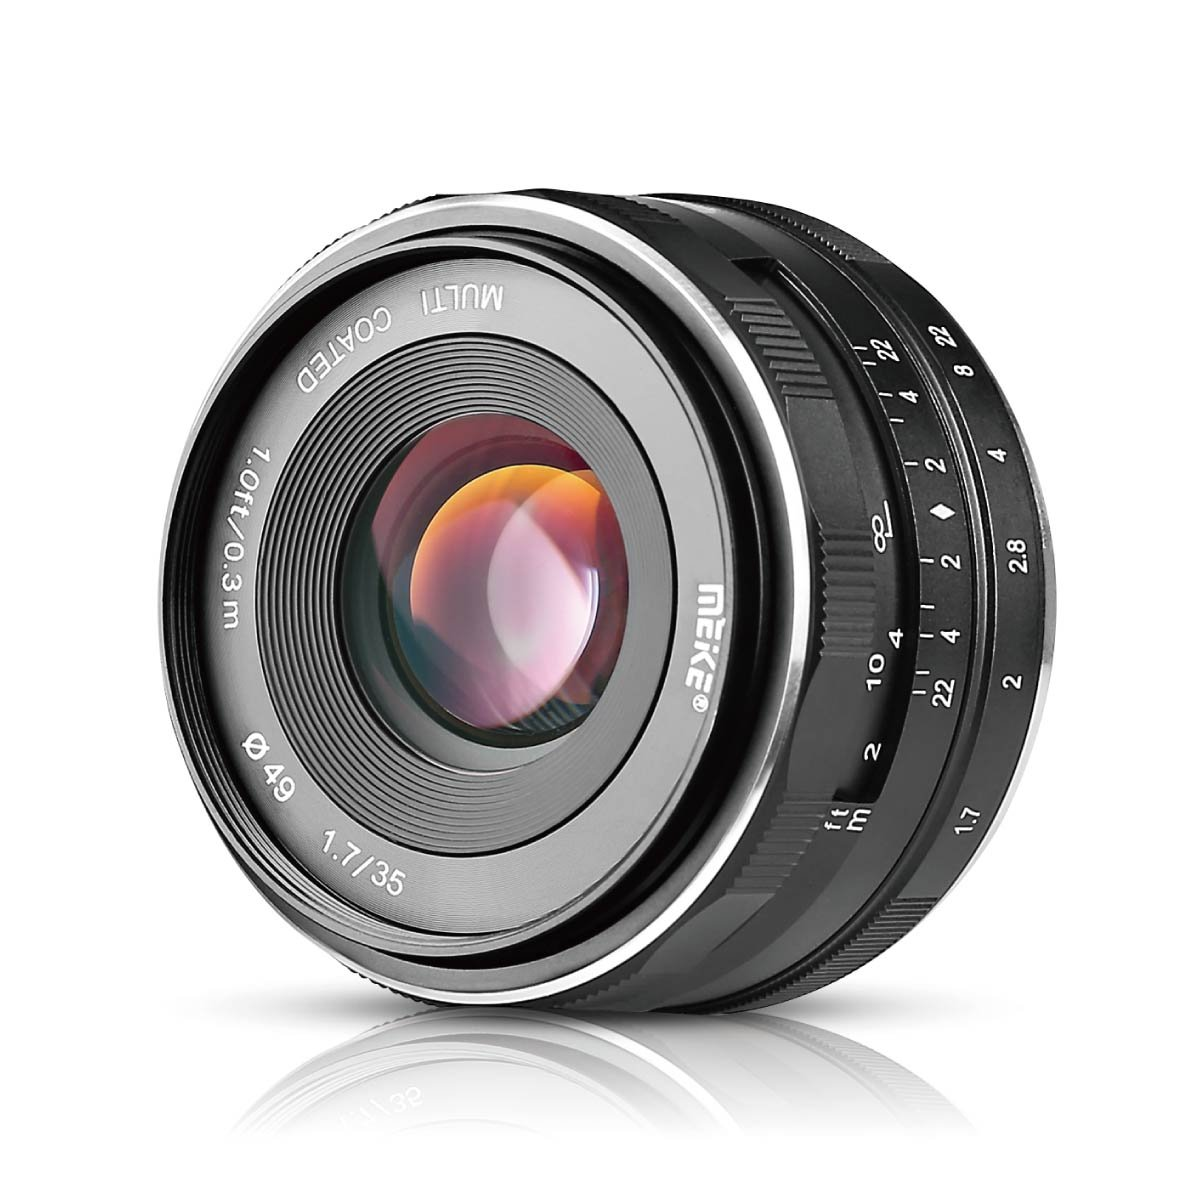 Meike MK-E-35-1.7 35mm F1.7 Large Aperture Manual Prime Fixed Lens APS-C for Sony E-Mount Digital Mirrorless Cameras A7III A9 NEX 3 3N 5 NEX 5T NEX 5R NEX 6 7 A6400 A5000 A5100 A6000 A6100 A6300 A6500 by Meike